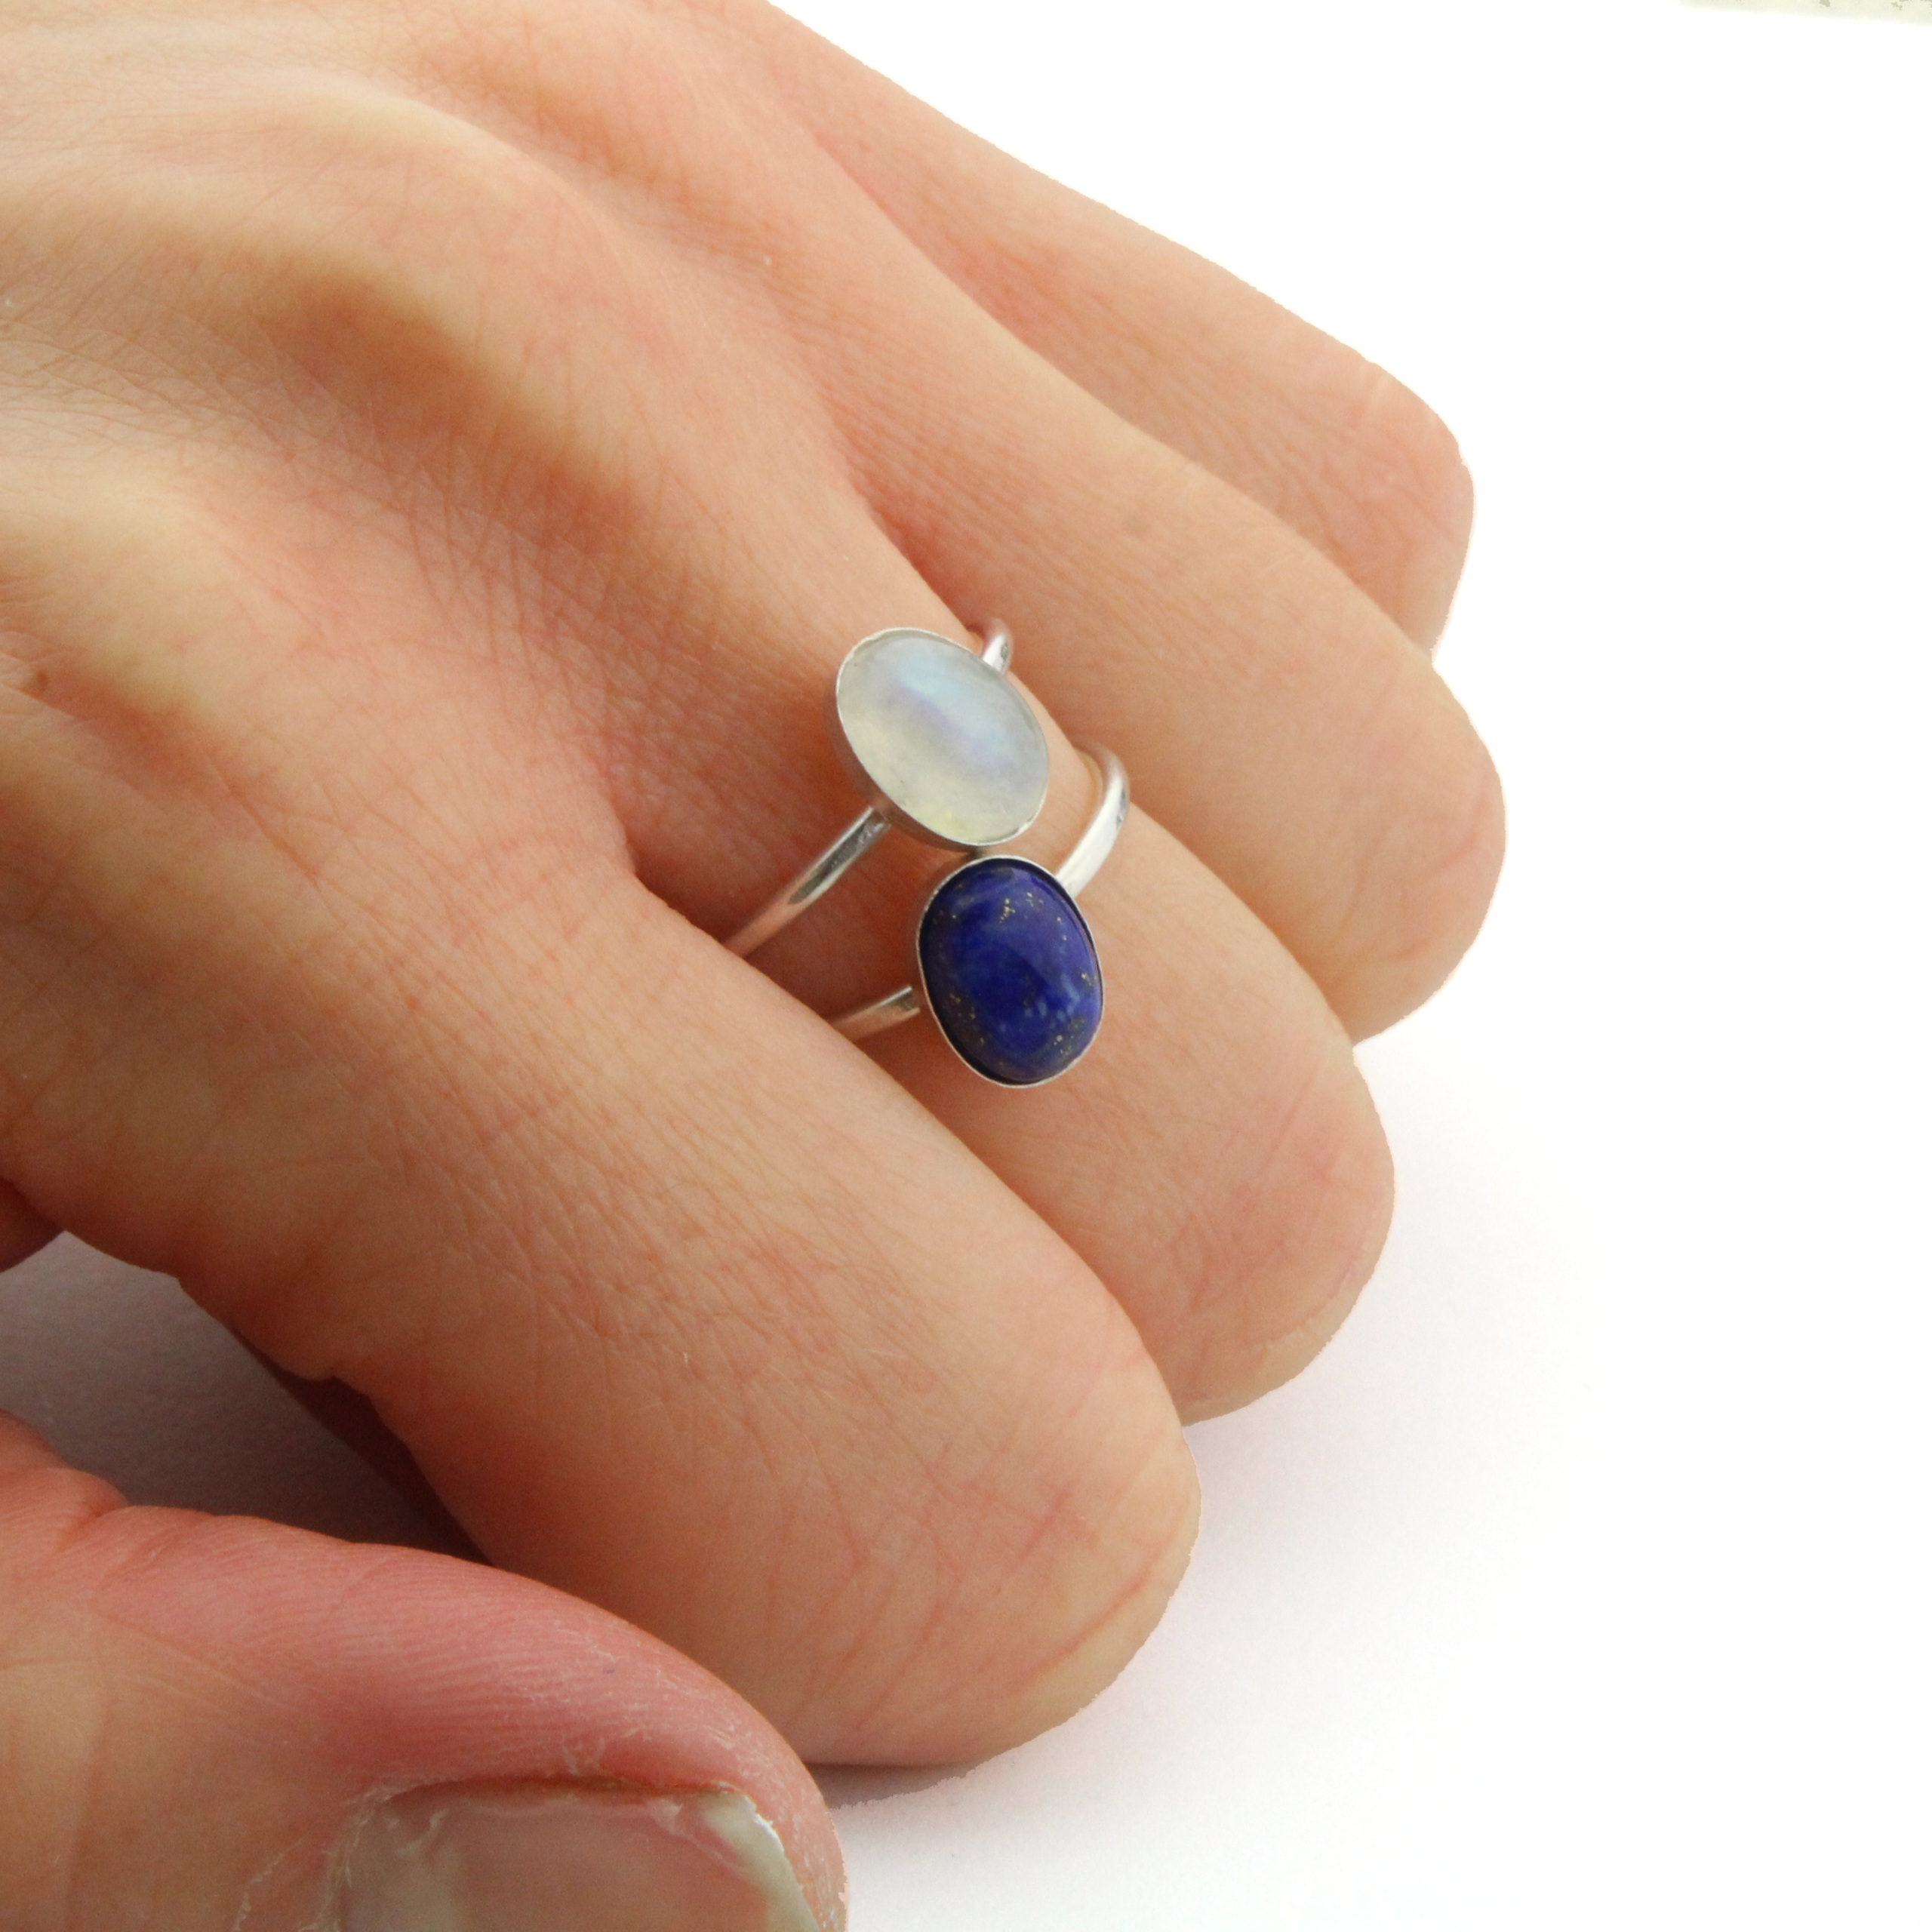 rings rainbow shop products sterling boho dixi ring silver nightshade share moonstone